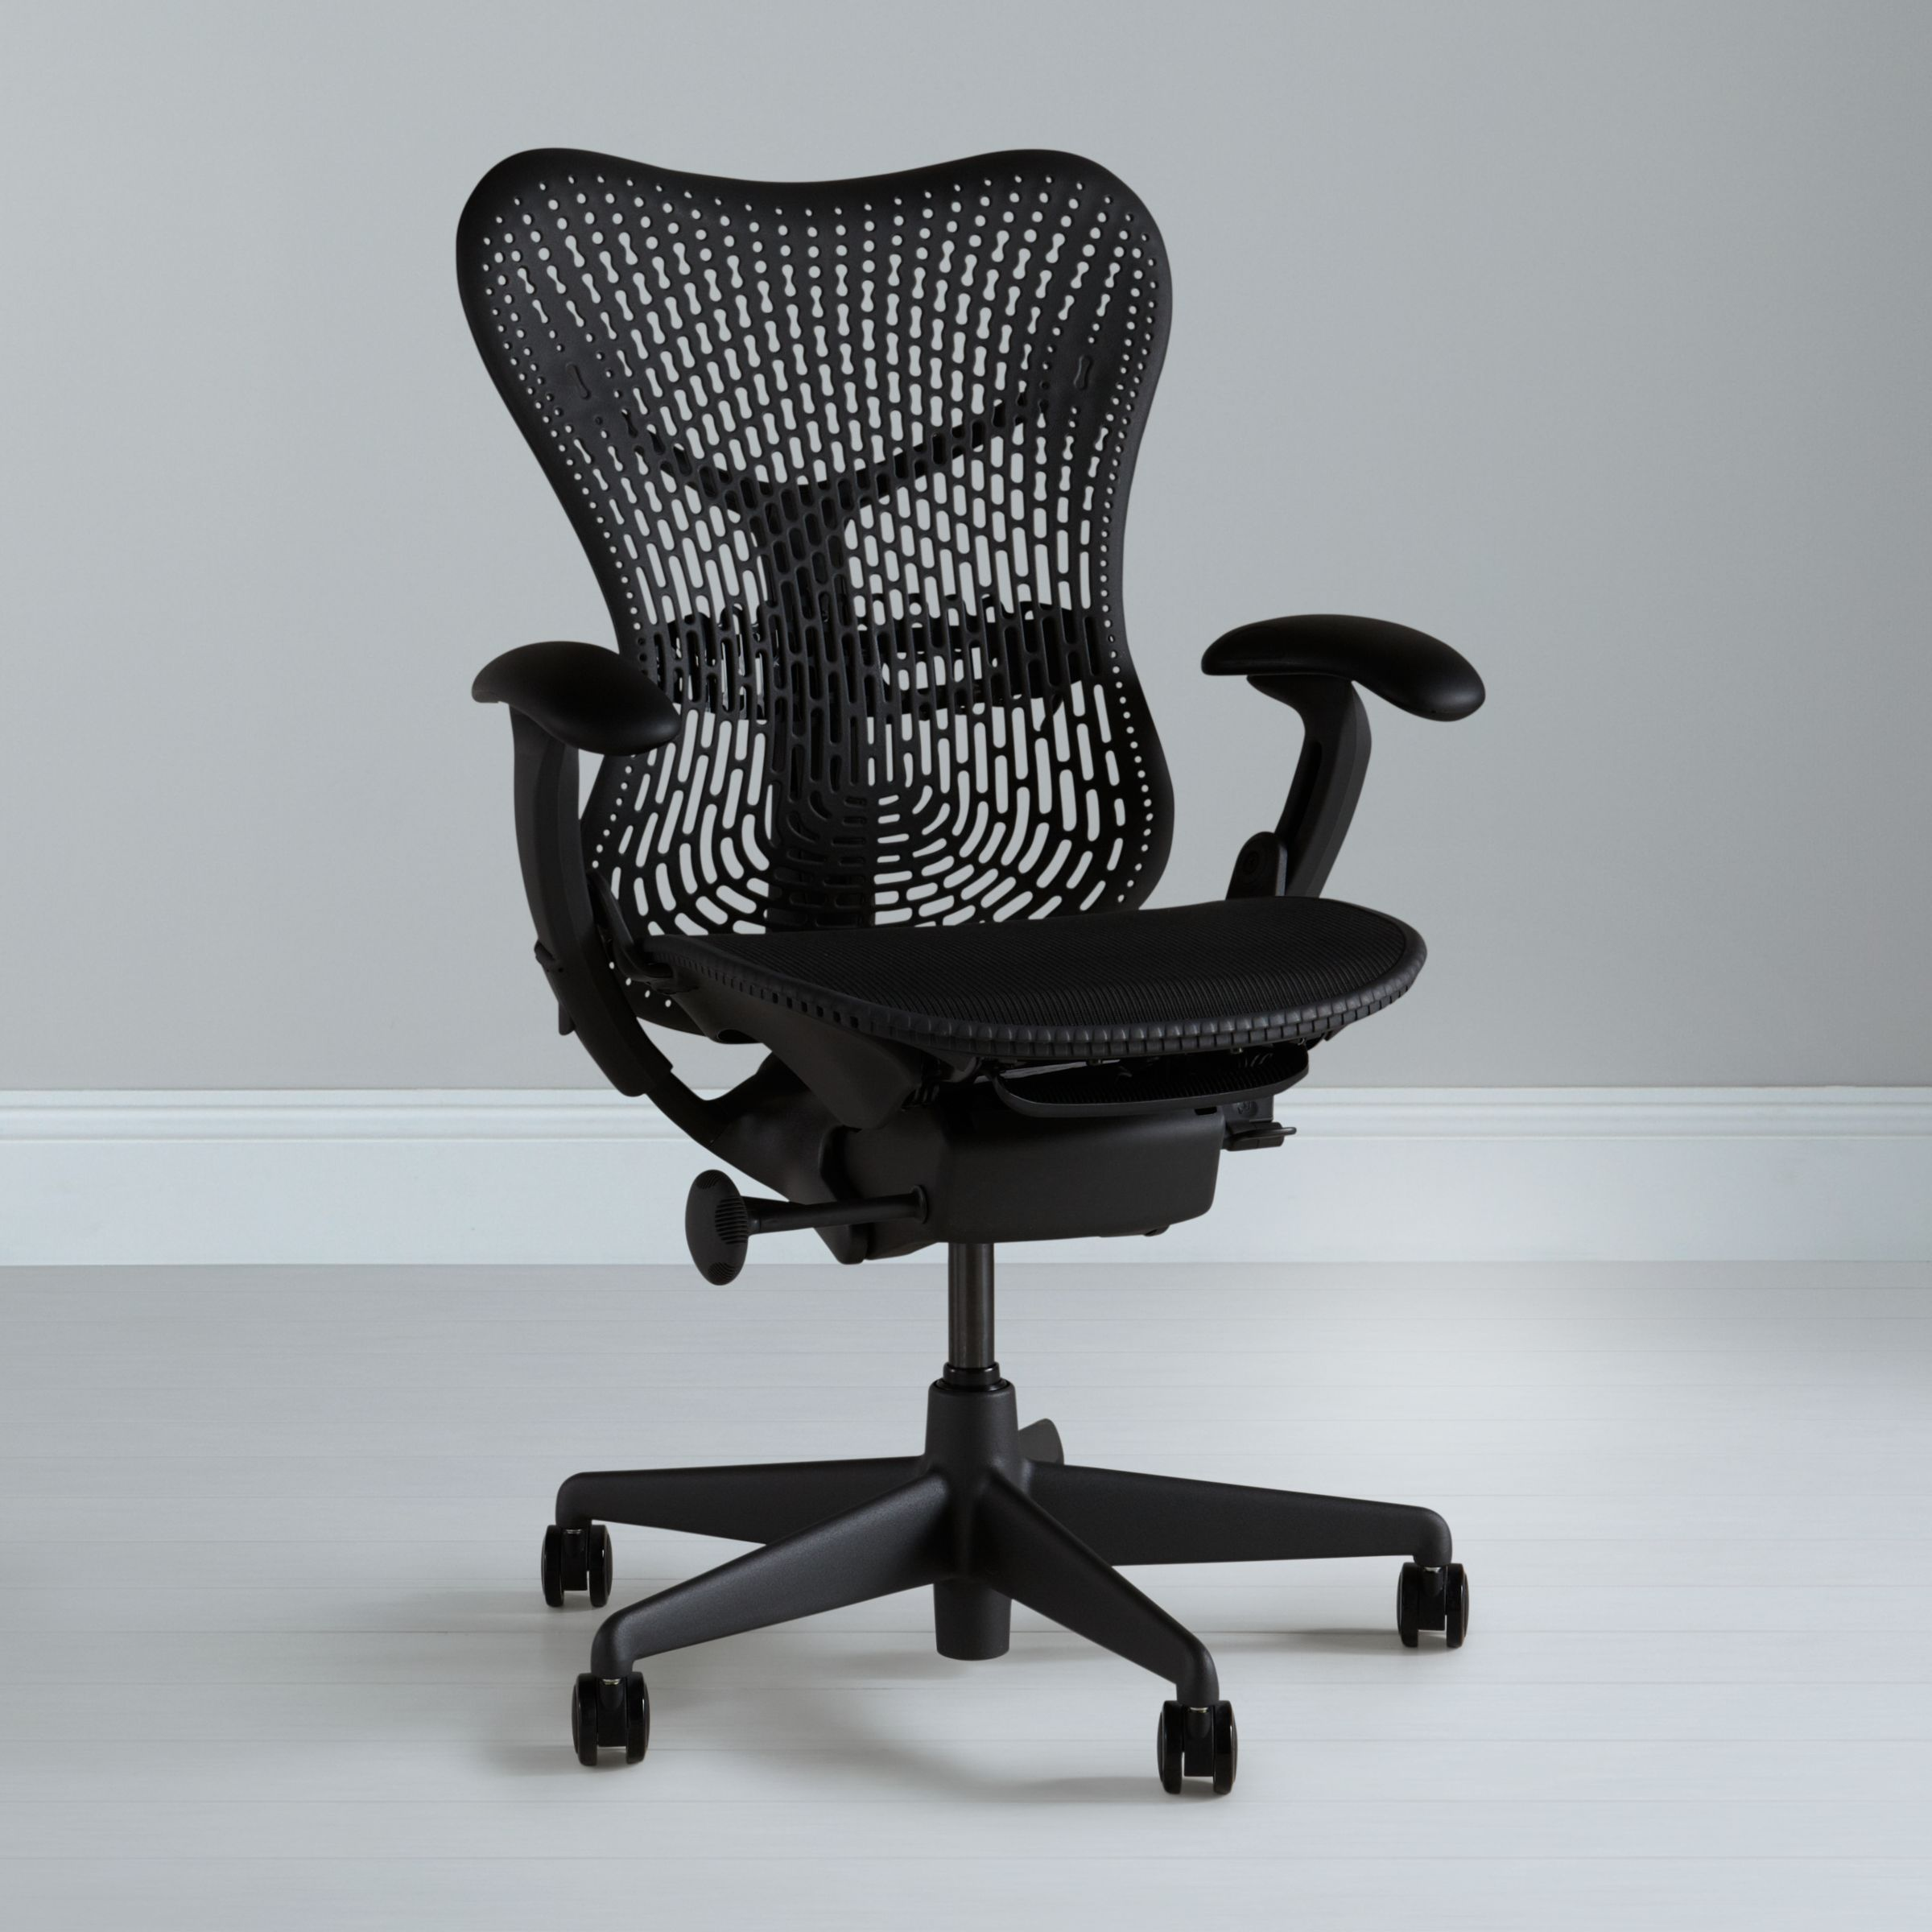 ergonomic chair miller student desk and herman mirra office graphite review